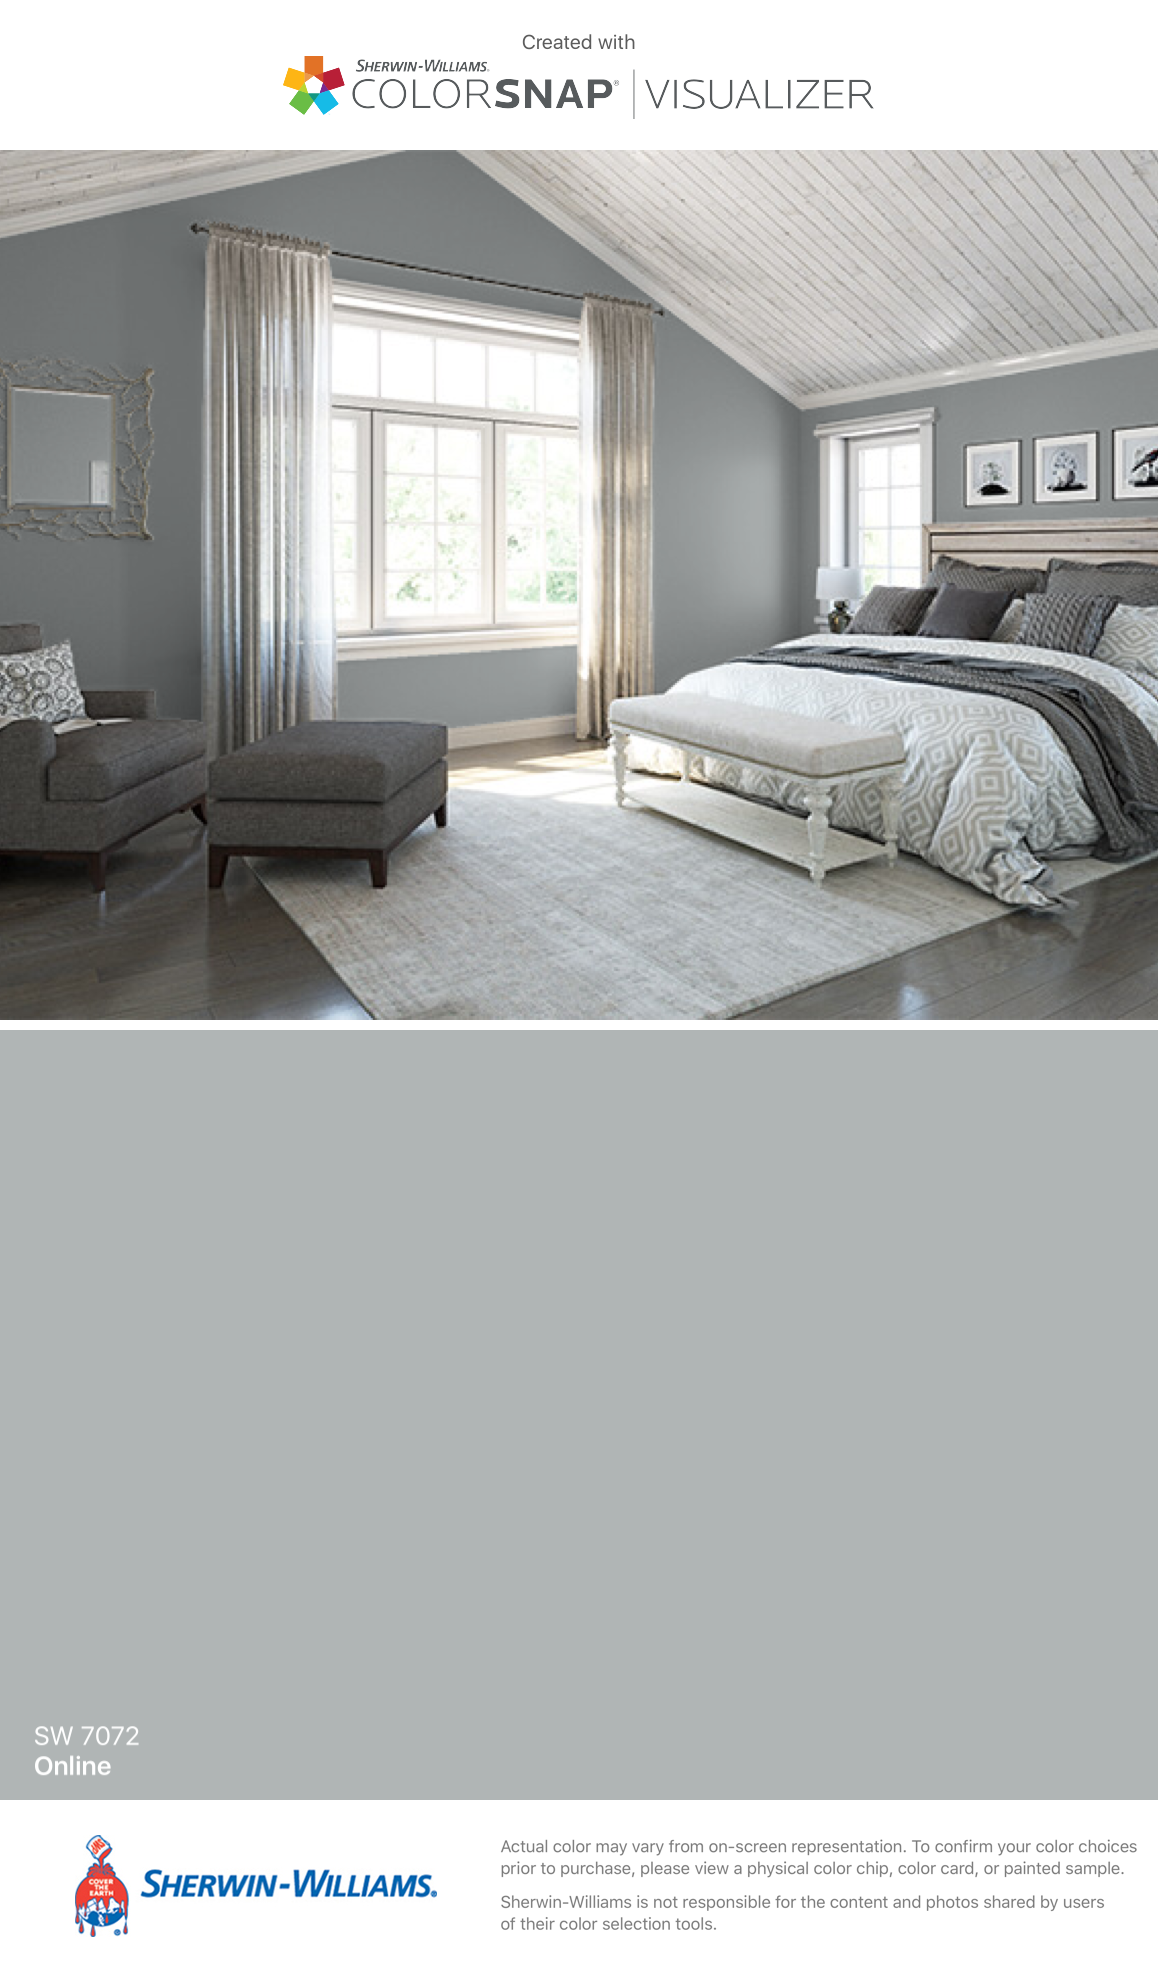 I Found This Color With Colorsnap Visualizer For Iphone By Sherwin Williams Online Sw 7072